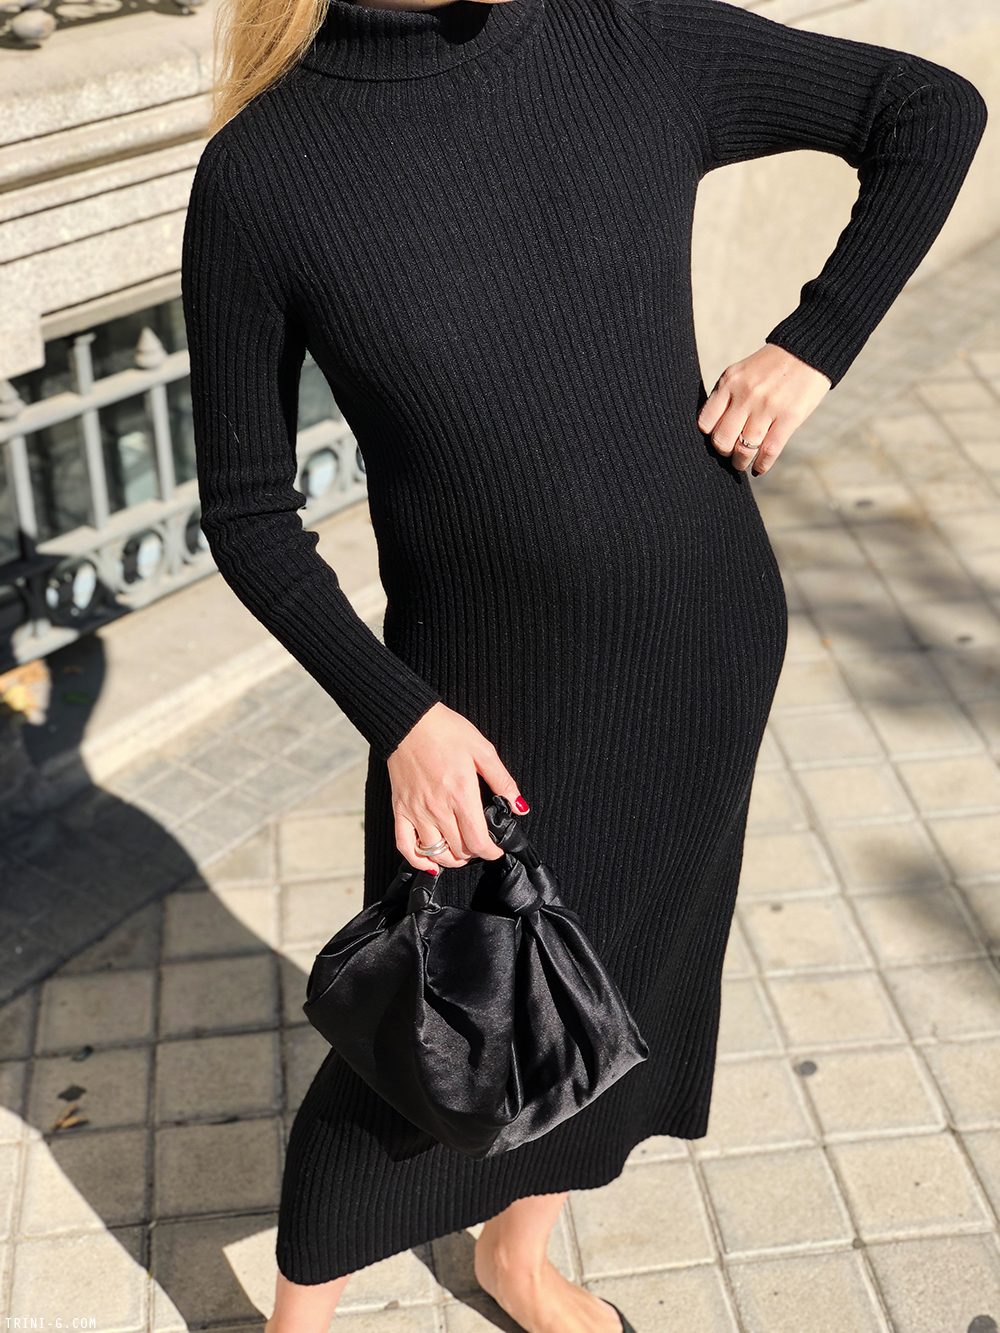 Trini | Max Mara turtleneck dress  Manolo Blahnik shoes